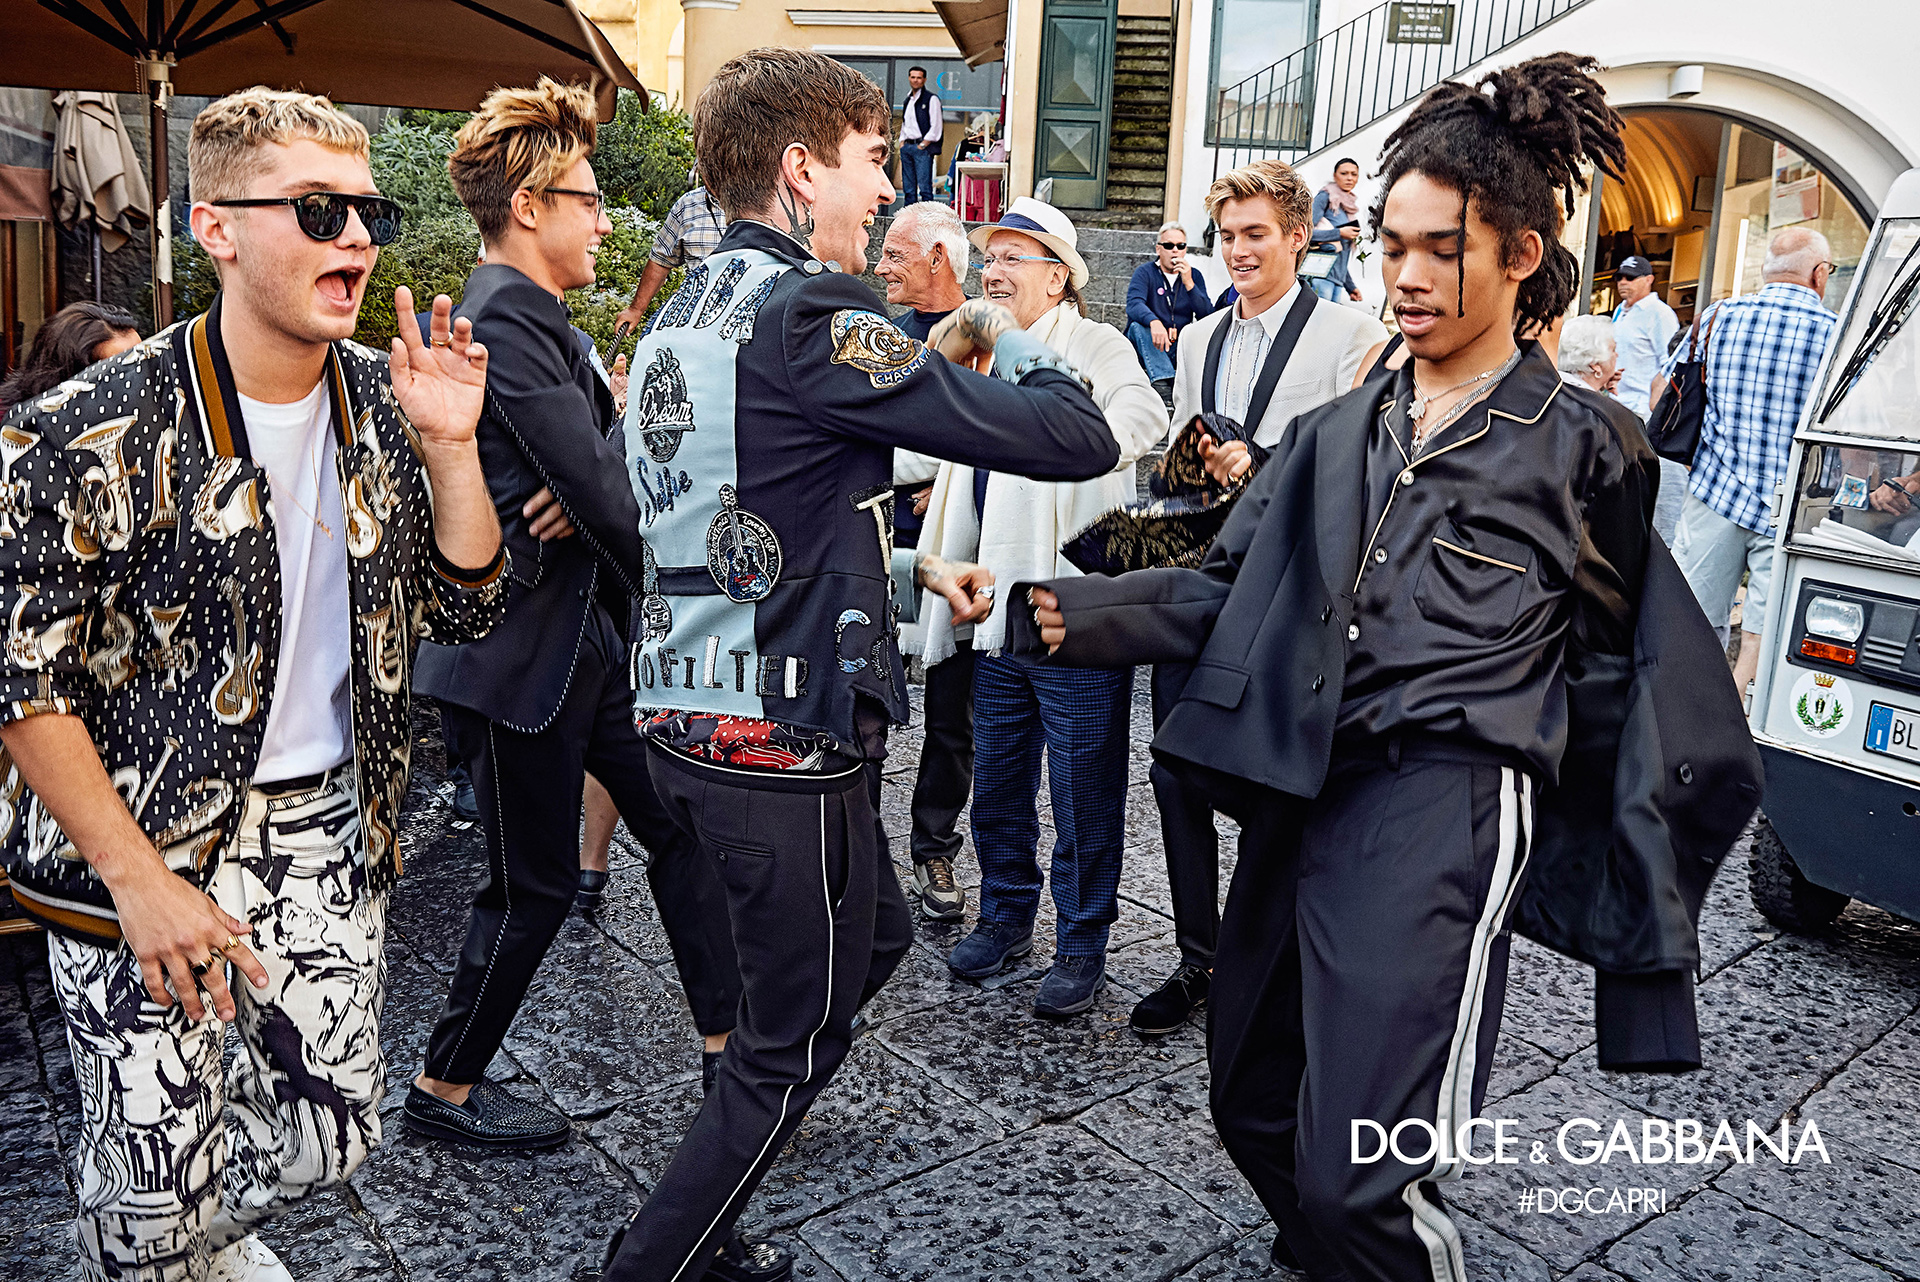 1be355d3 dolce-and-gabbana-summer-2017-man-advertising-campaign-BONNE-New ...